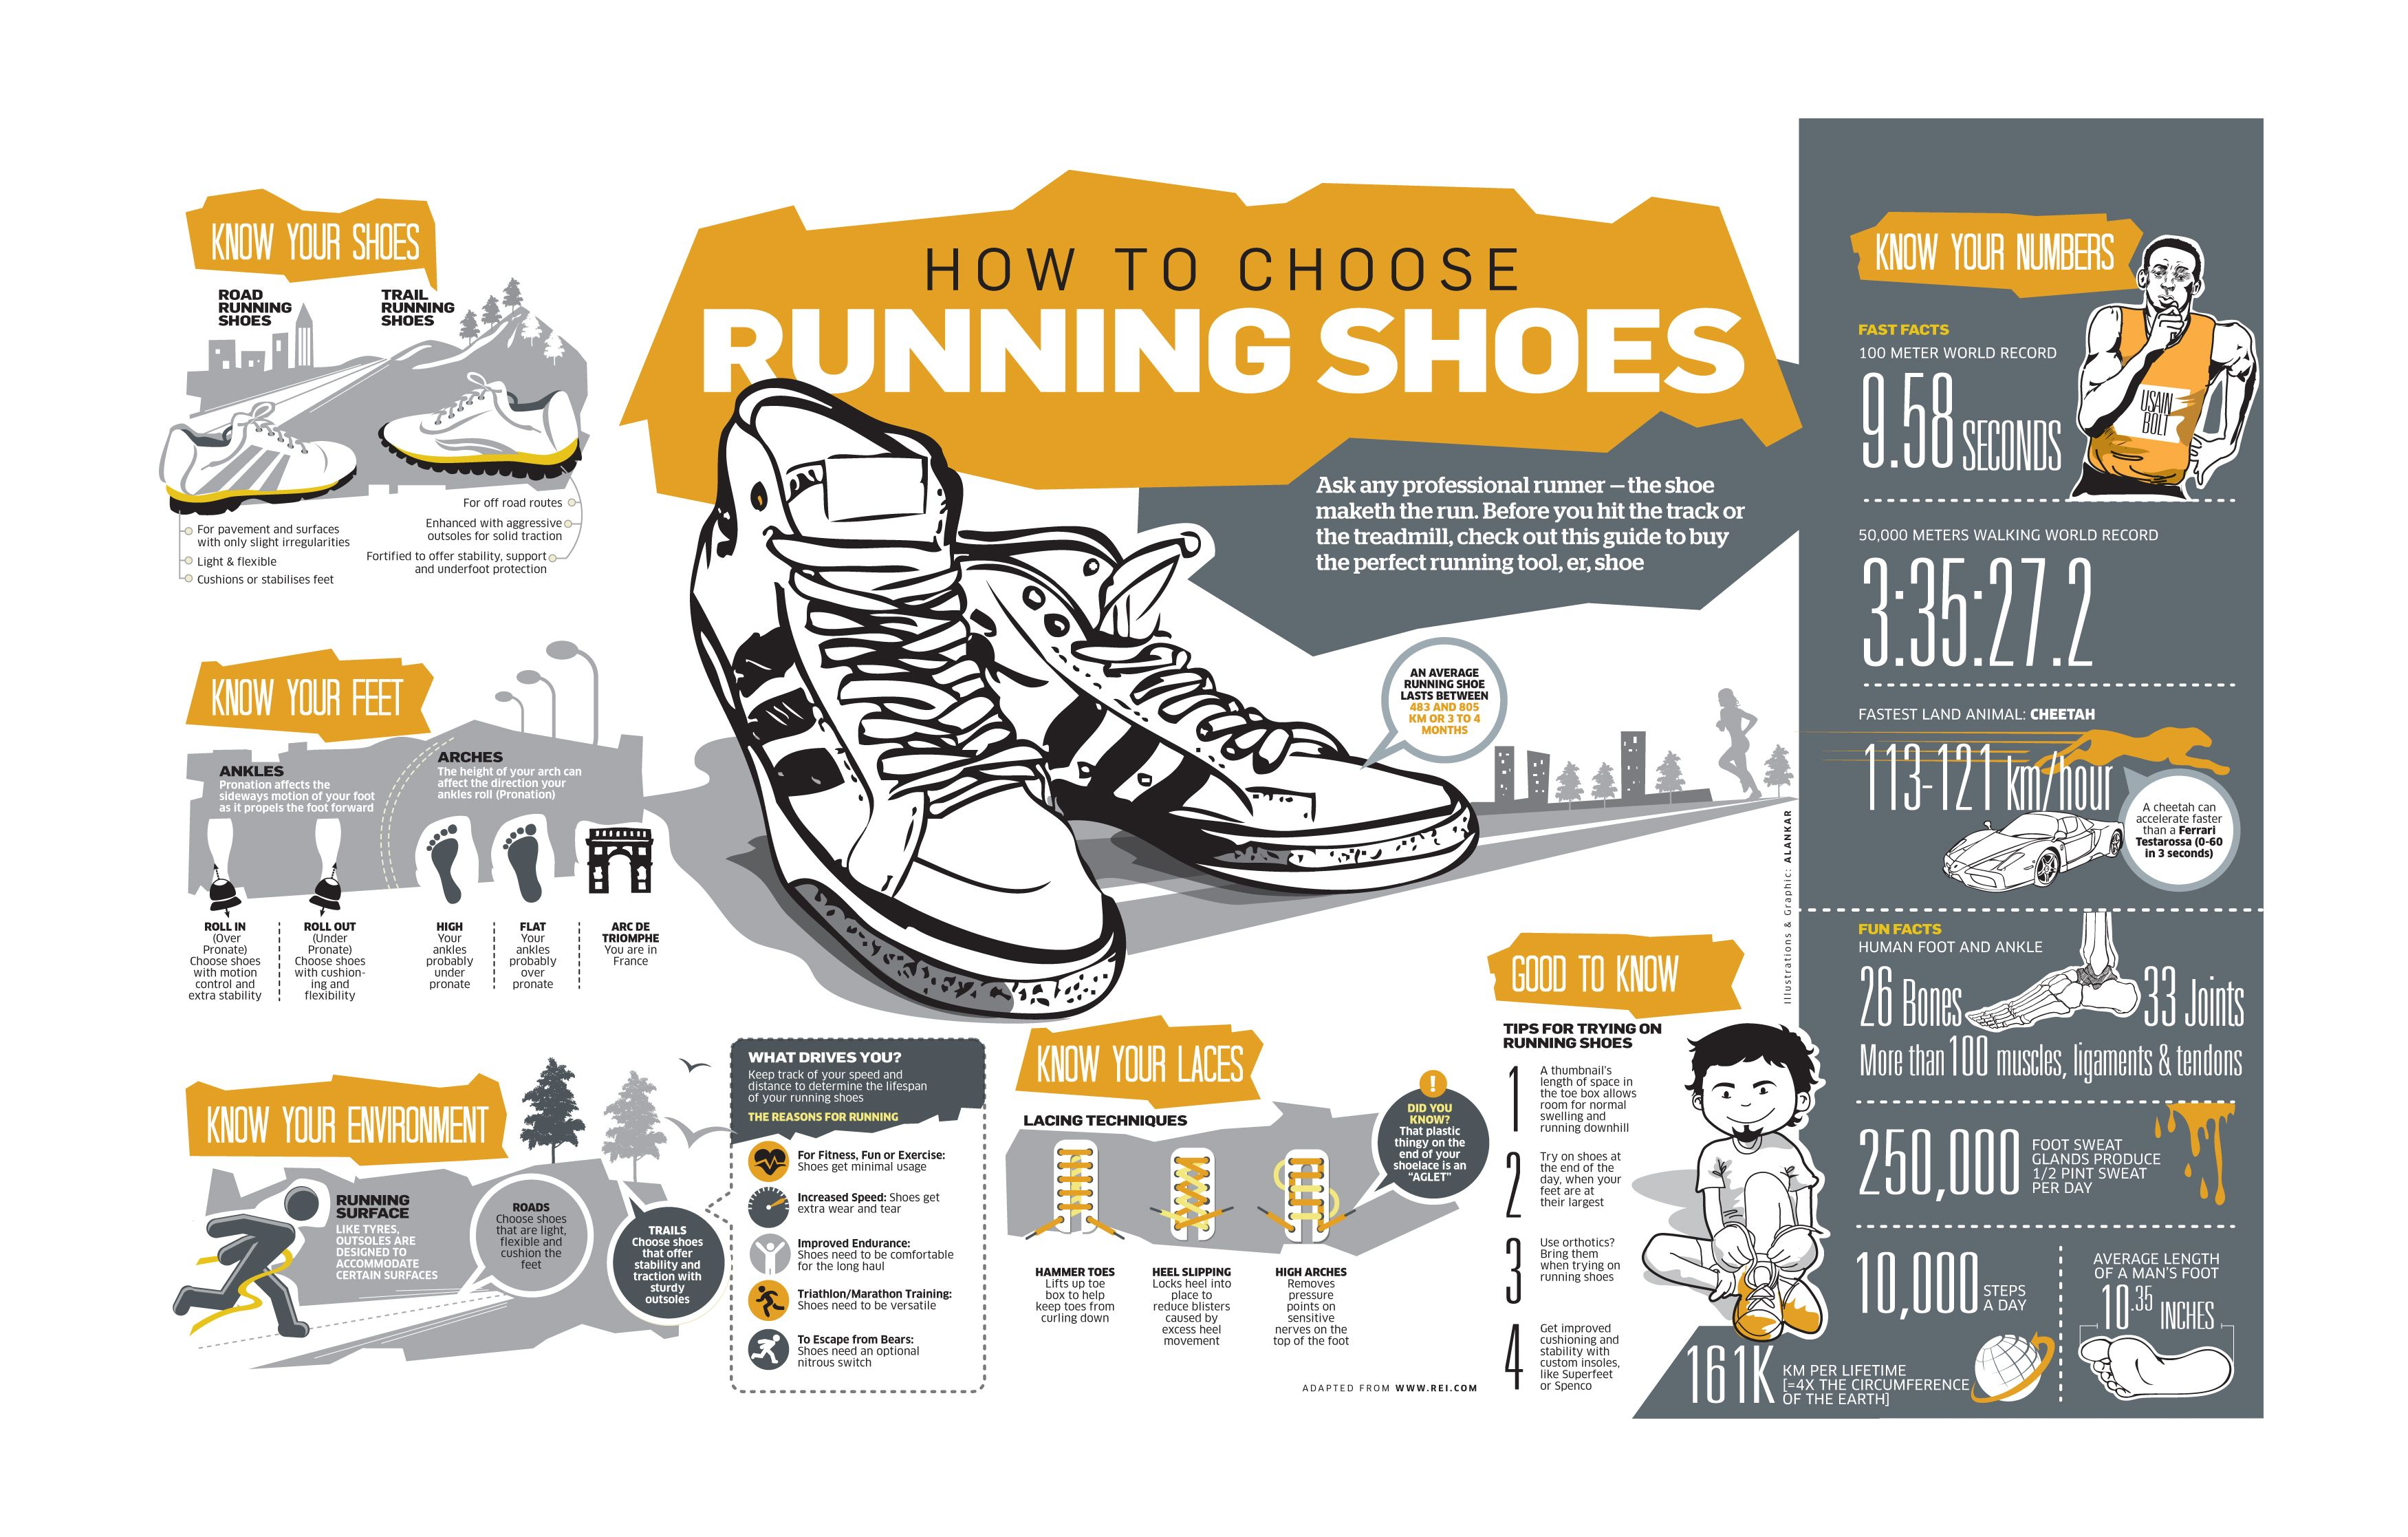 17 Best images about Passionate Running on Pinterest | Runners ...